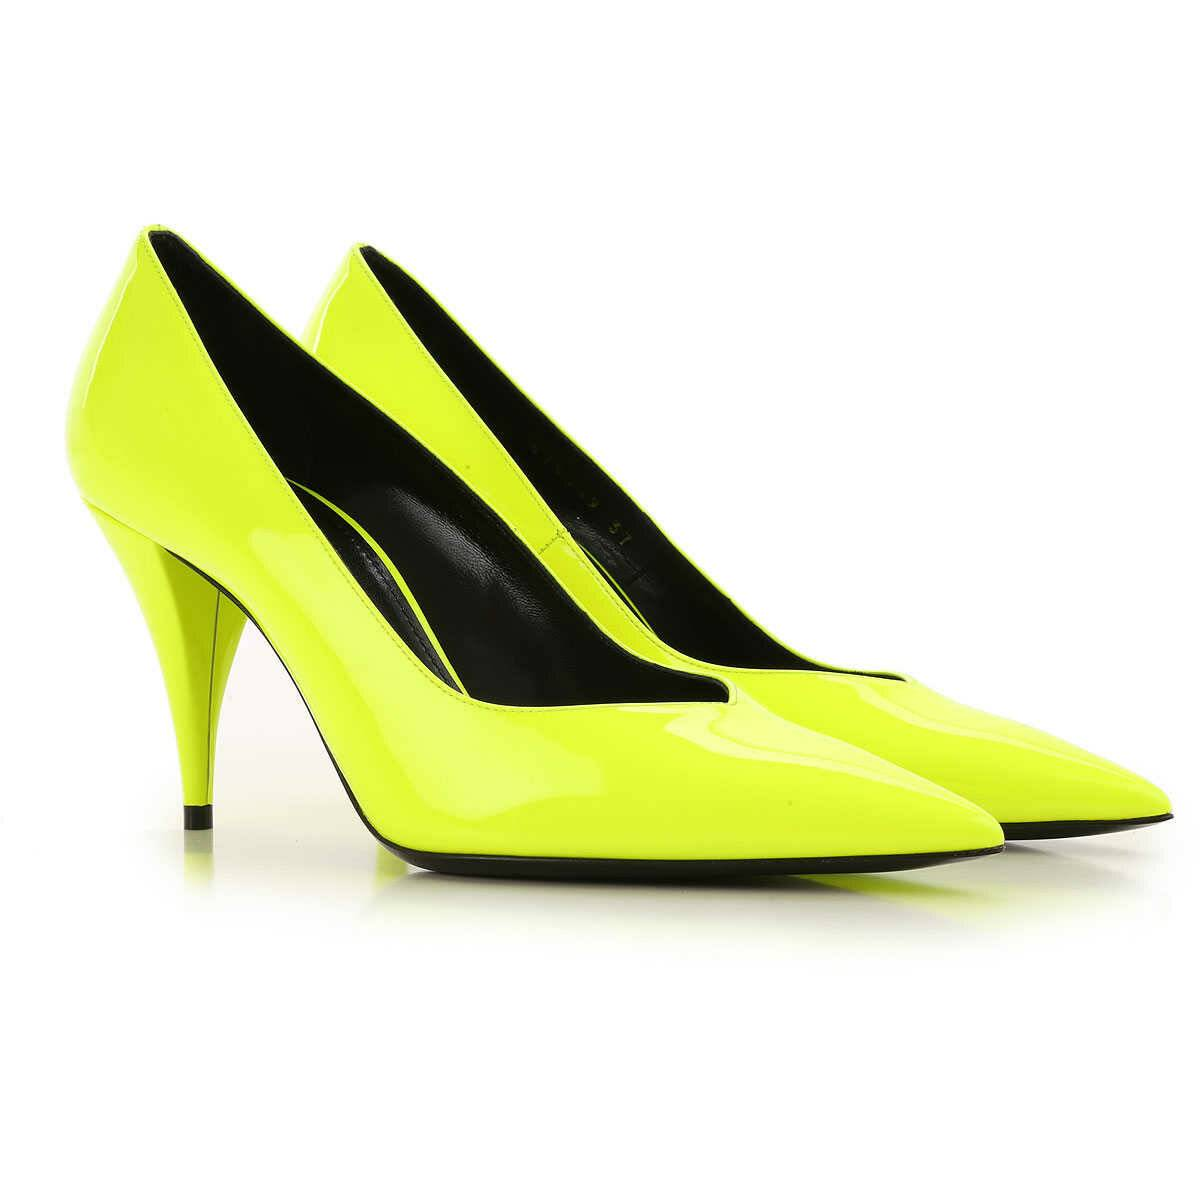 GOOFASH Women Pumps and High Heels shop